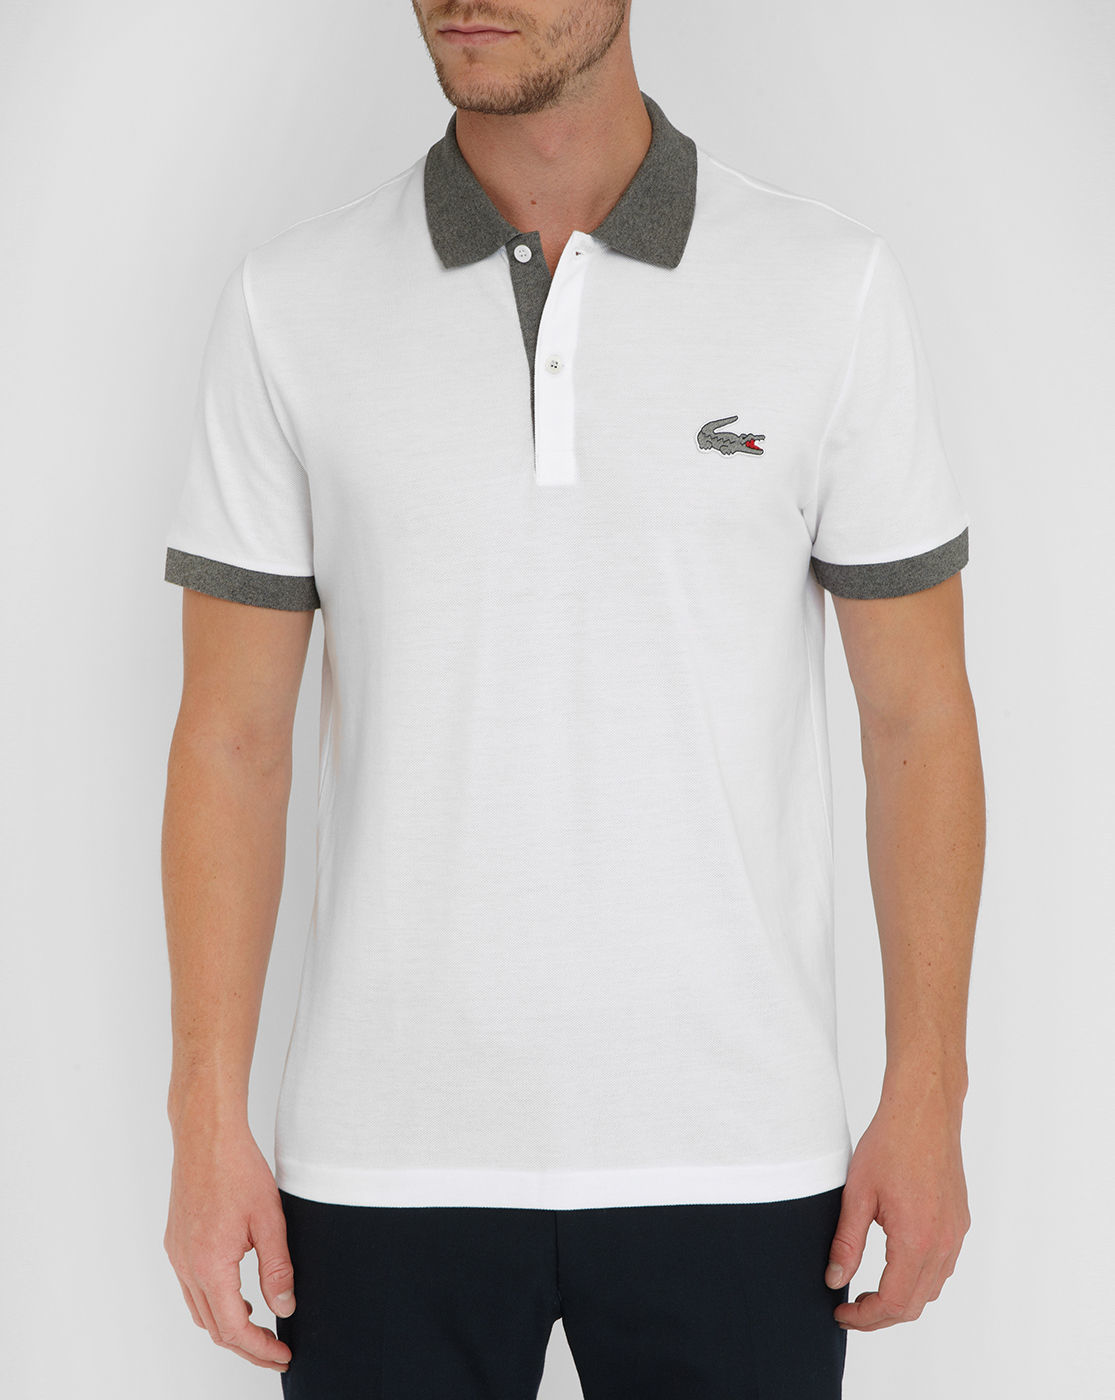 lacoste white chest logo polo shirt menlook 5 year. Black Bedroom Furniture Sets. Home Design Ideas